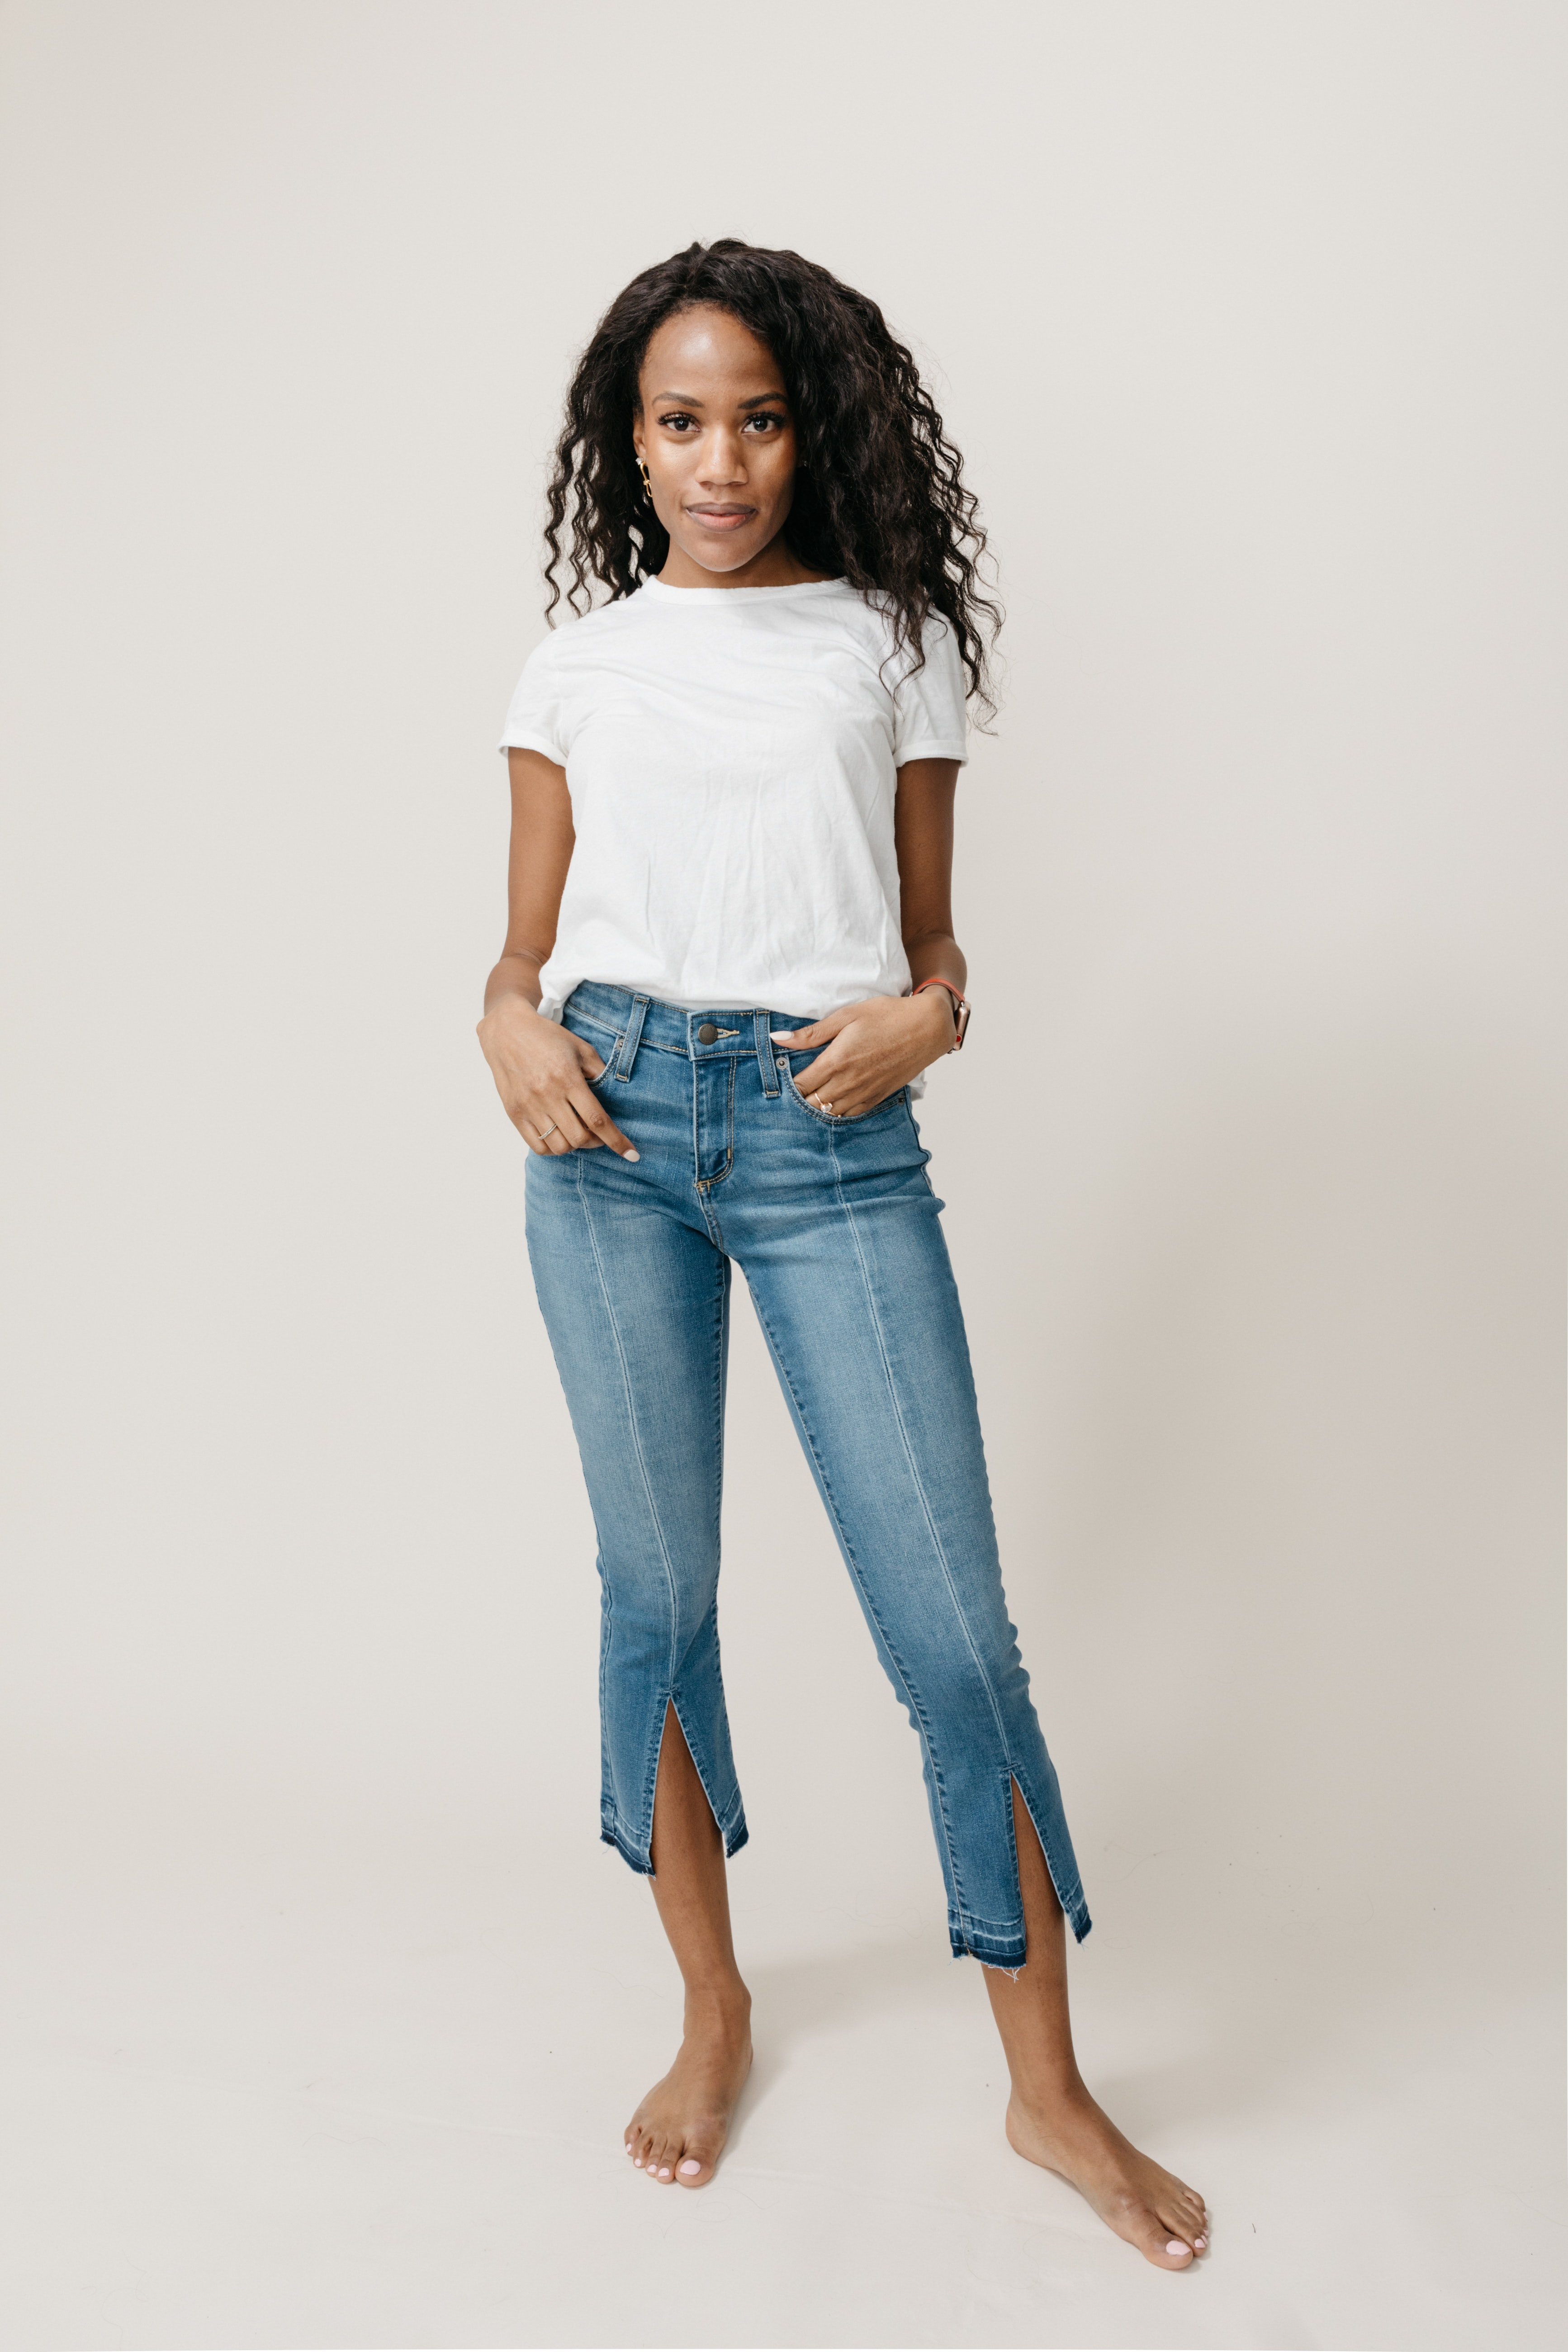 442d48f80ebd2 This Is What Target s Universal Thread Denim Looks Like On 15 Different  Body Types